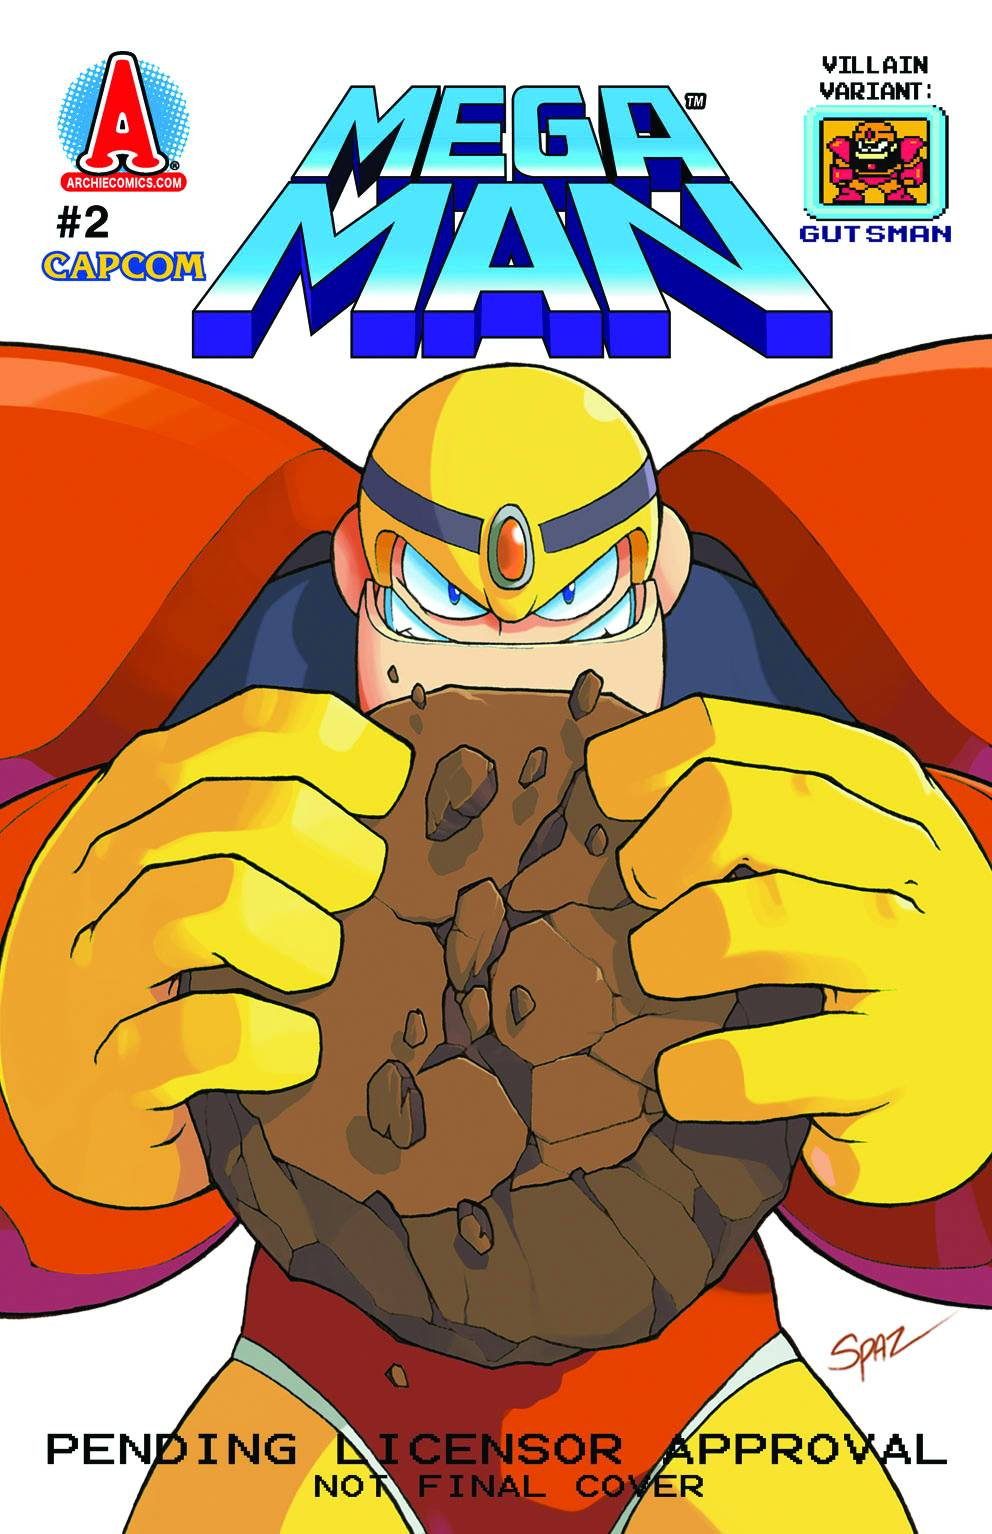 Mega Man #2 Villain Variant First Print